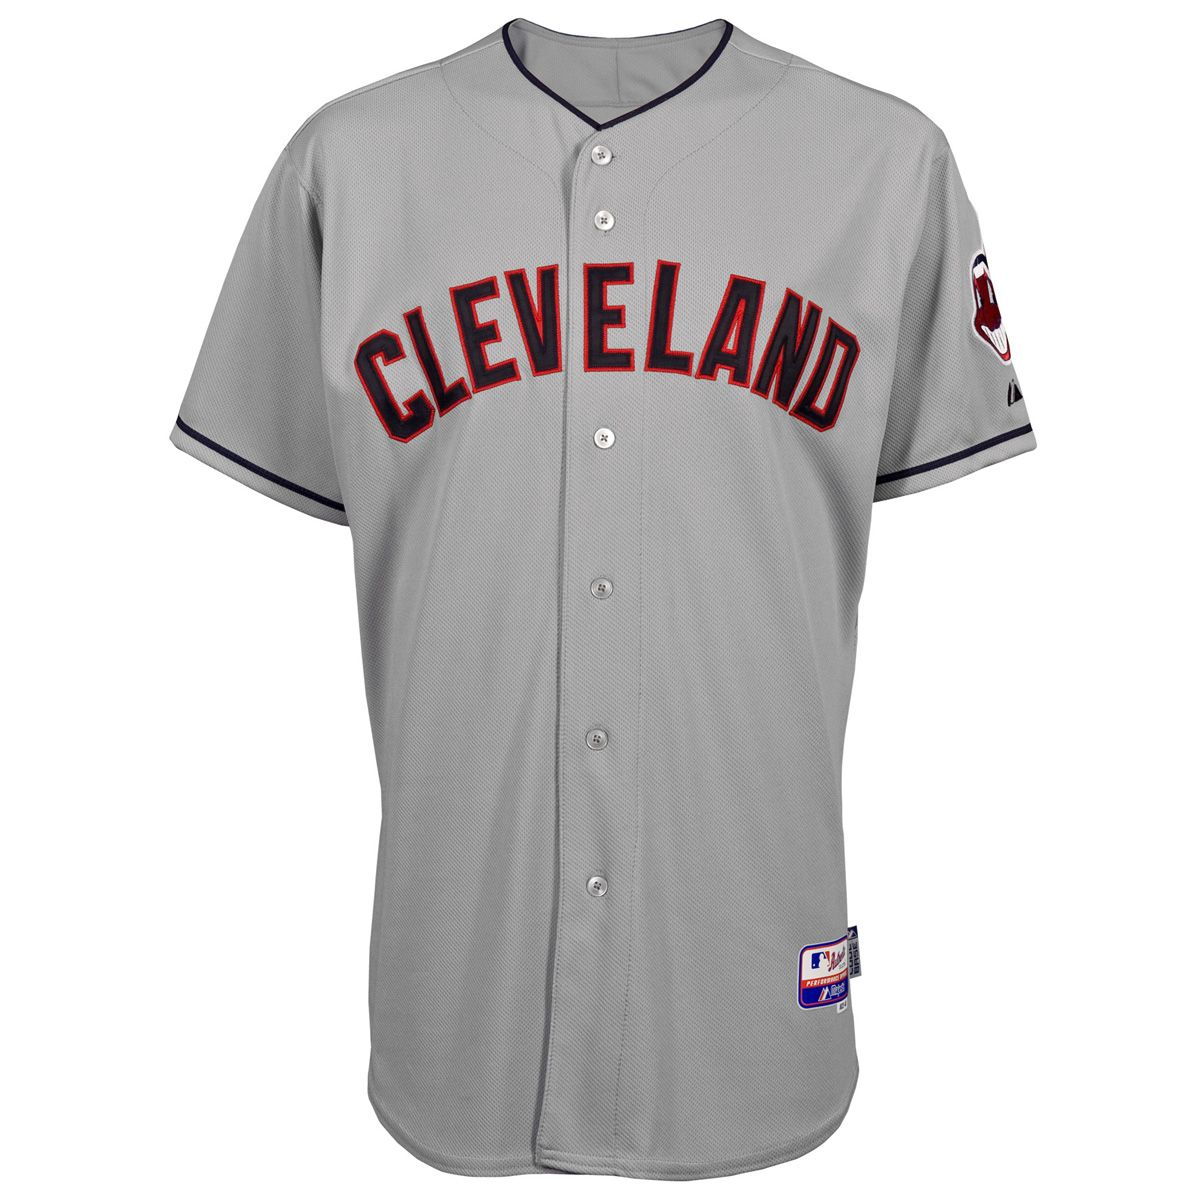 Cleveland Indians Authentic Cool Base Road Mlb Baseball Jersey